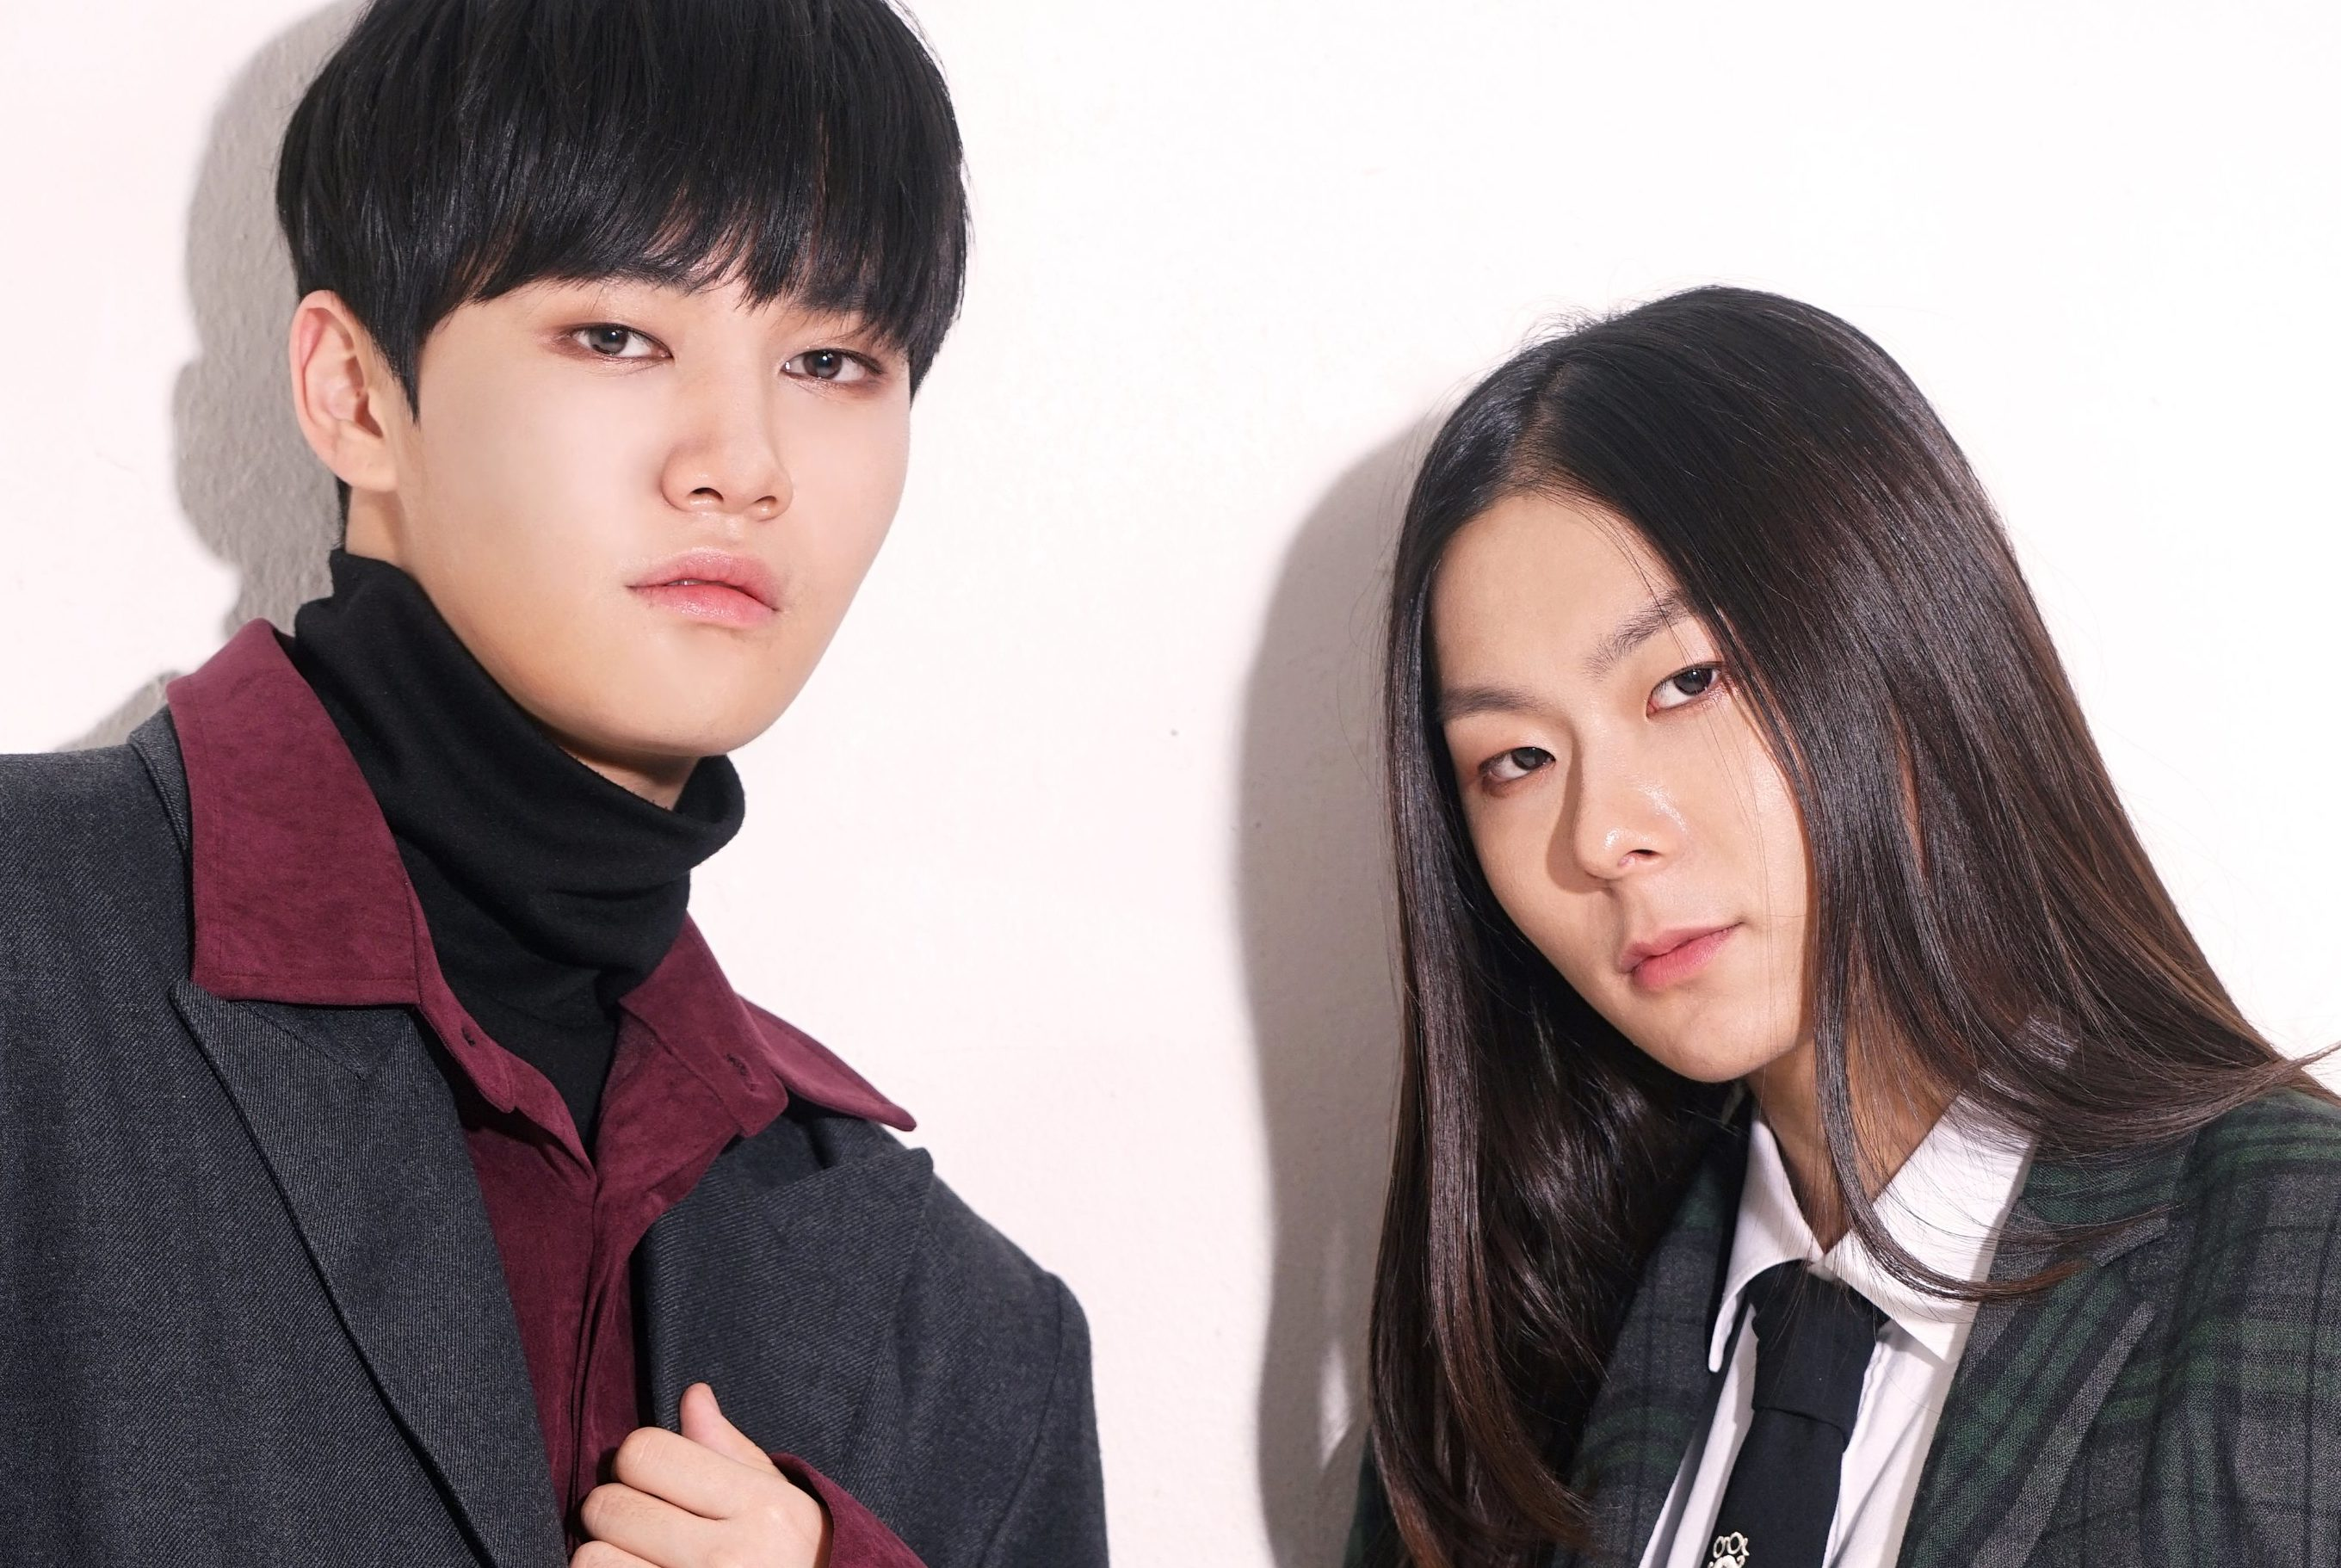 Jang Moon Bok y Seong Hyun Woo reaccionan a la belleza latina en divertido video